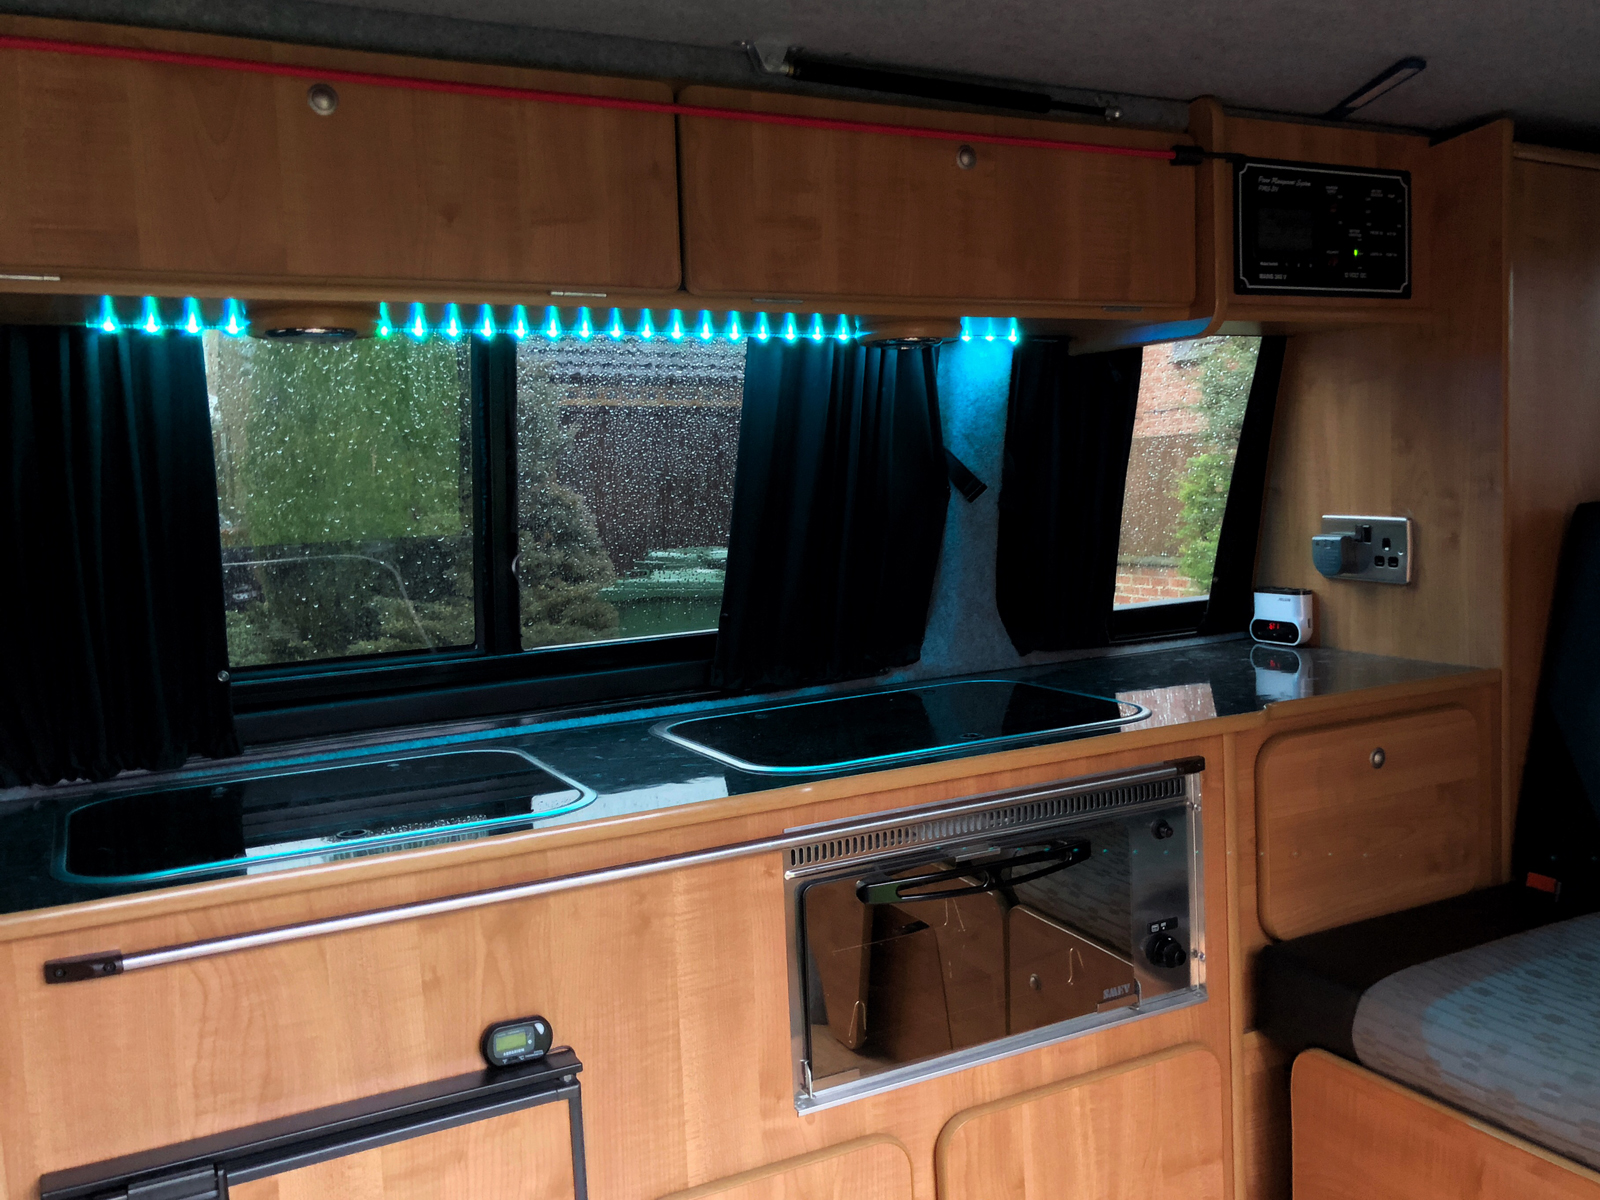 Cheap Led Lighting For The Campervan Volkscamper Wiring Lights To Leisure Battery Strip Is Actually Designed Connect Usb Port On A Tv Or Computer Monitor Provide Backlight Ive Already Installed One